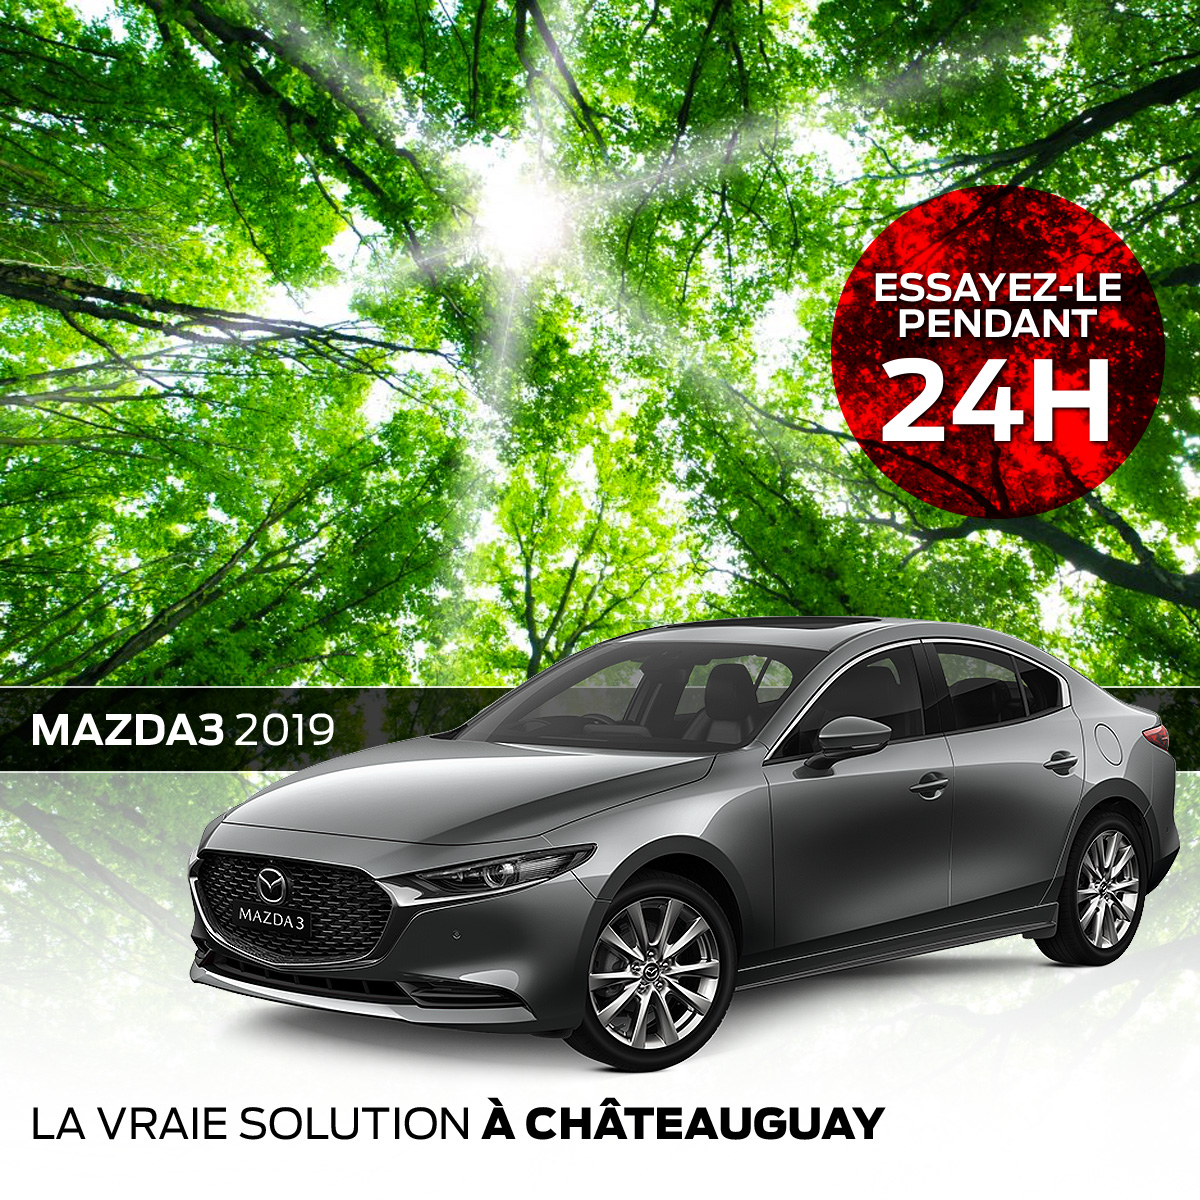 Solution Mazda Châteauguay